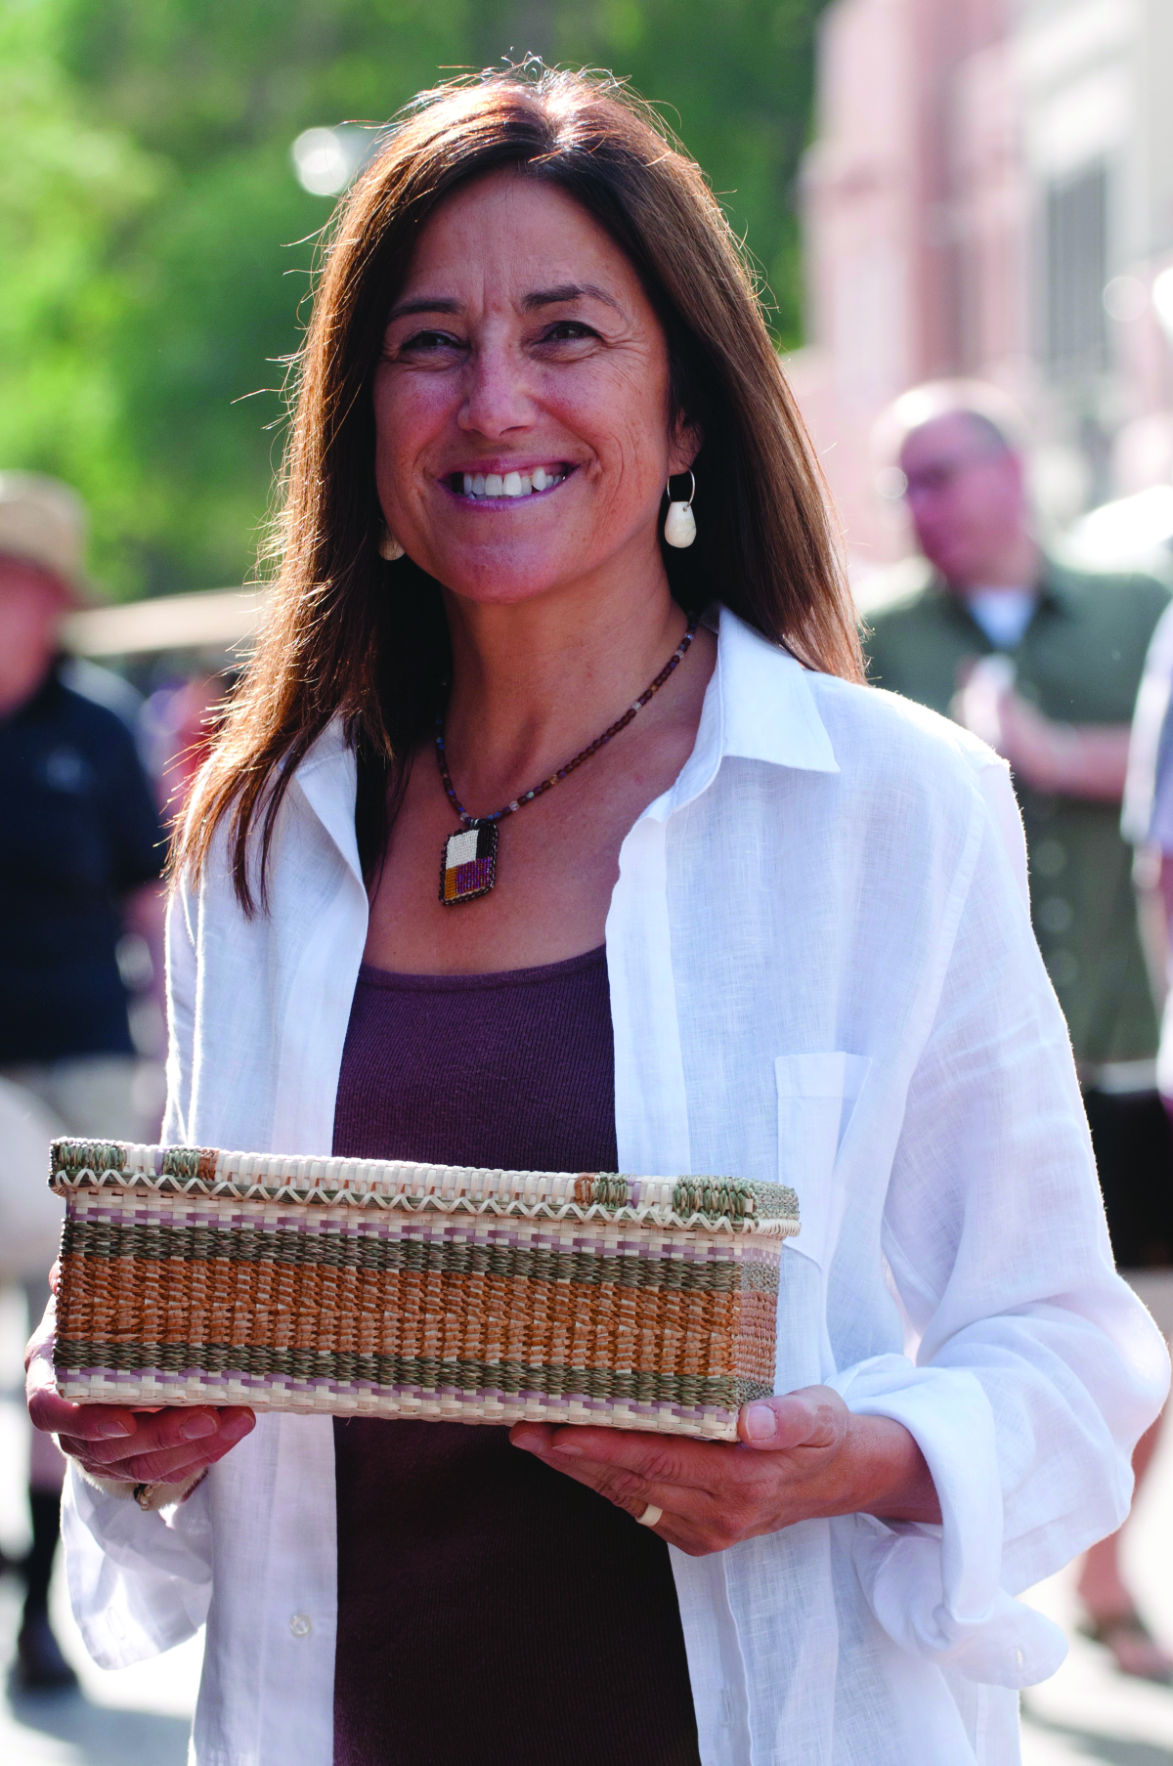 Theresa Secord with Basket